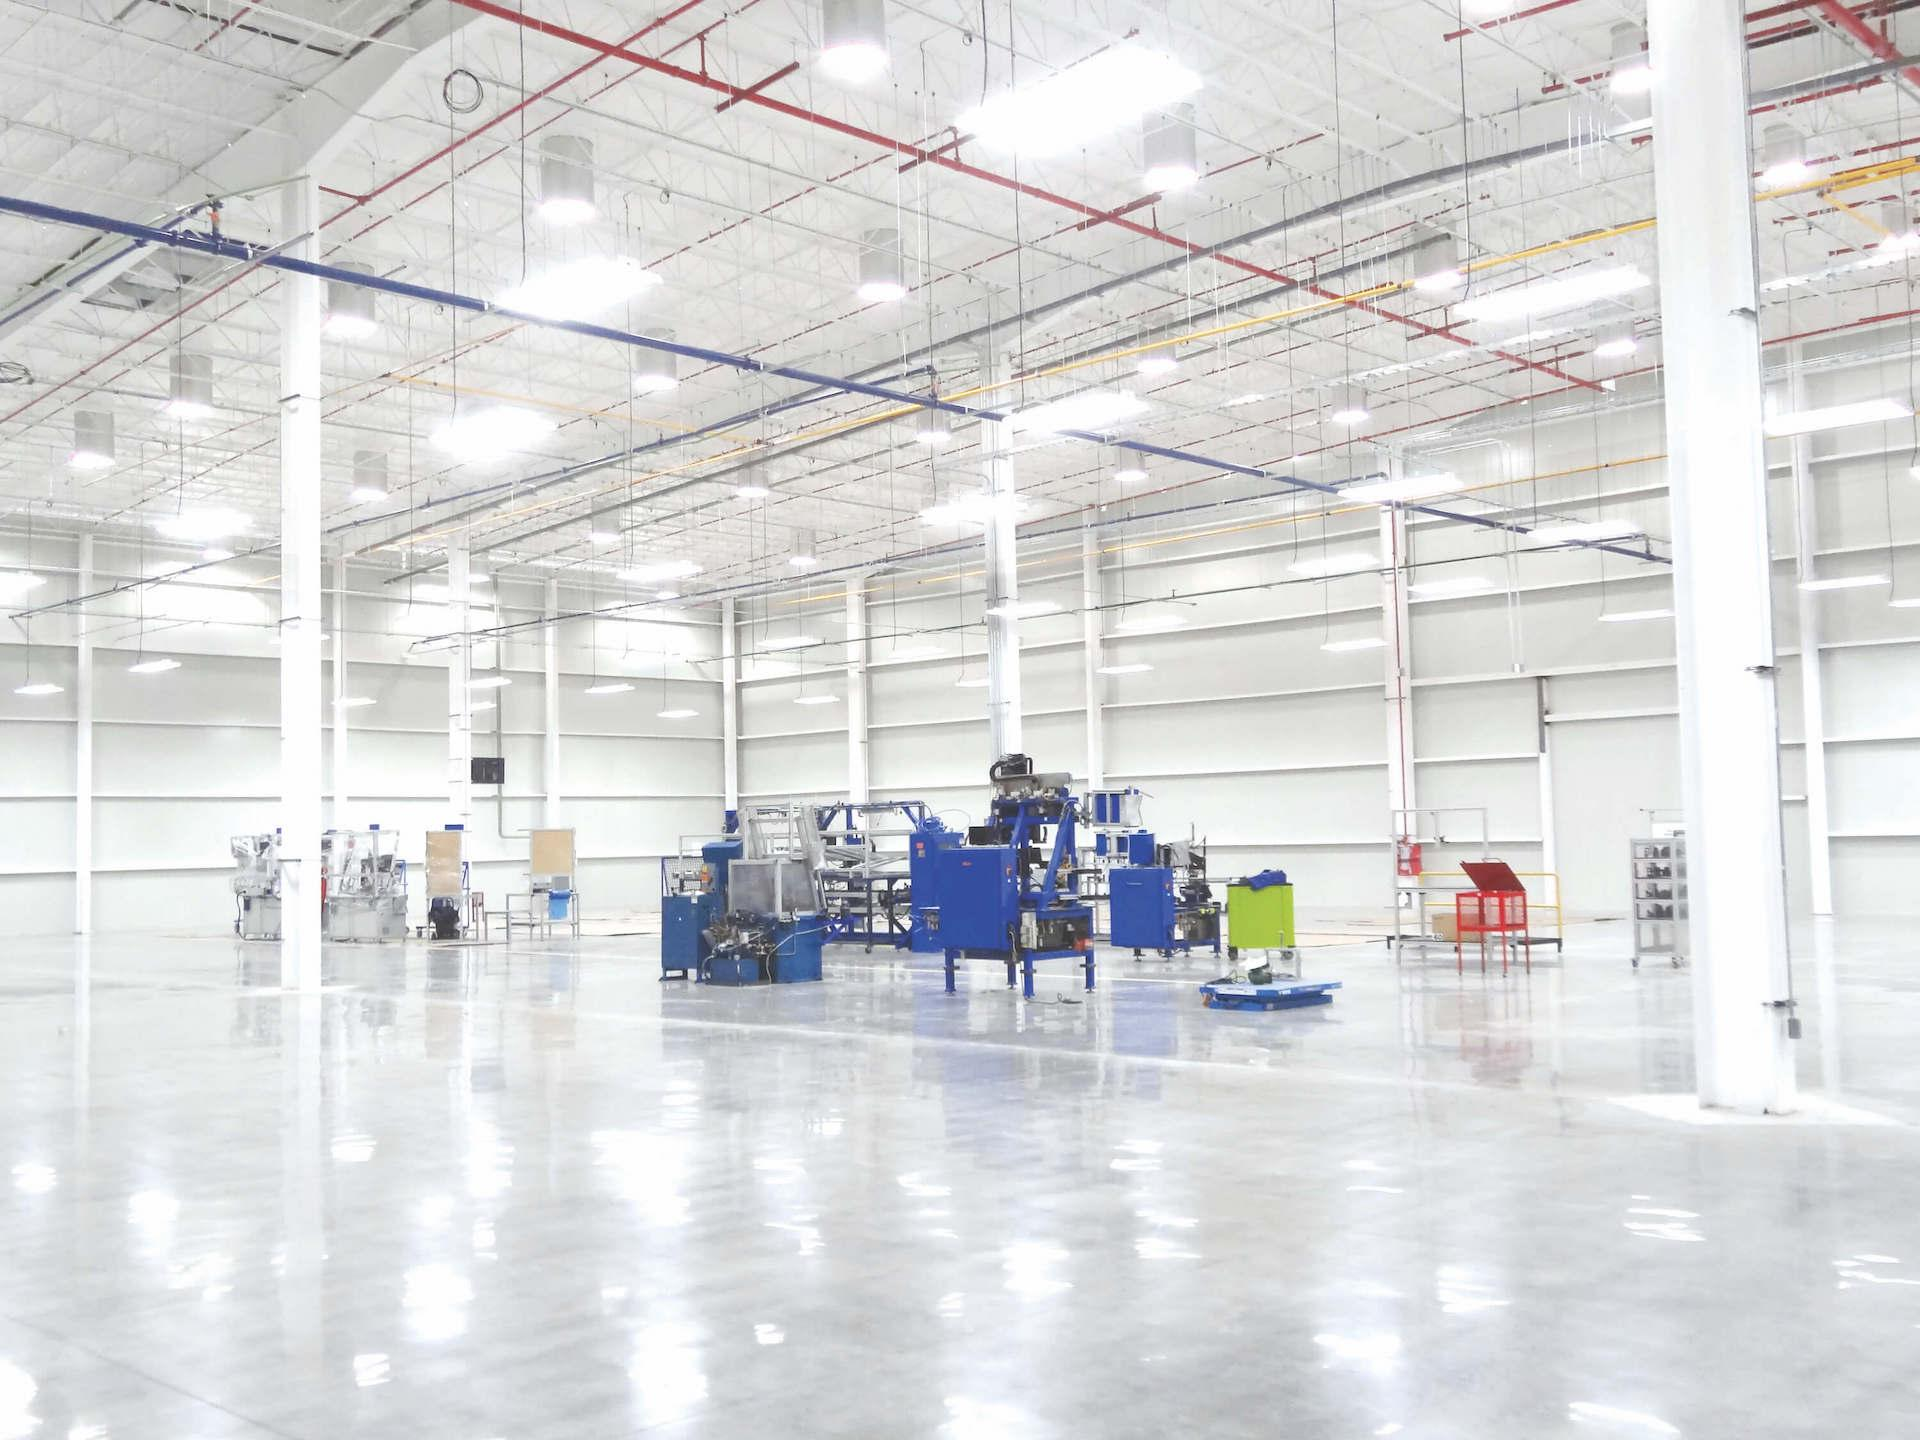 Large and bright factory interior, recently completed